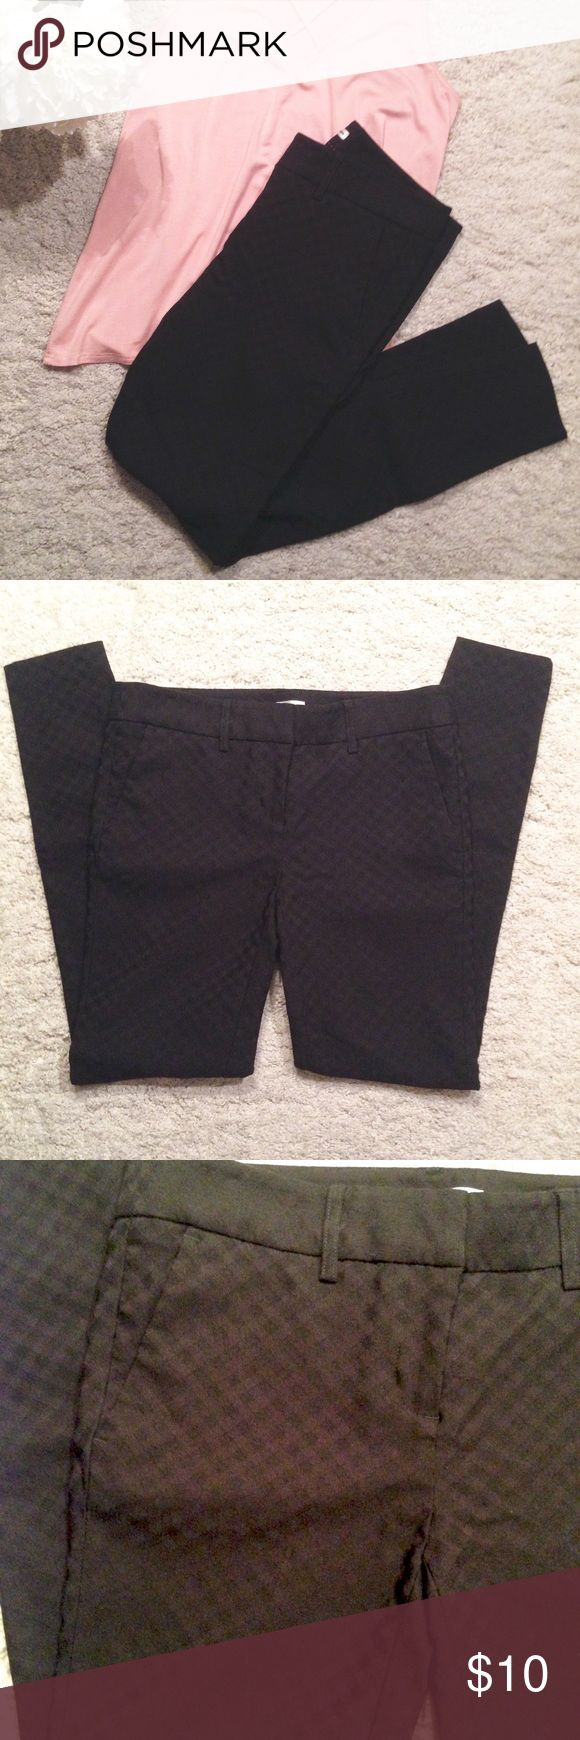 Dalia Black Pants Dalia • Black on black checkered pants • Size 4 • Like New • Purchased on Posh, too small on me Dalia Pants